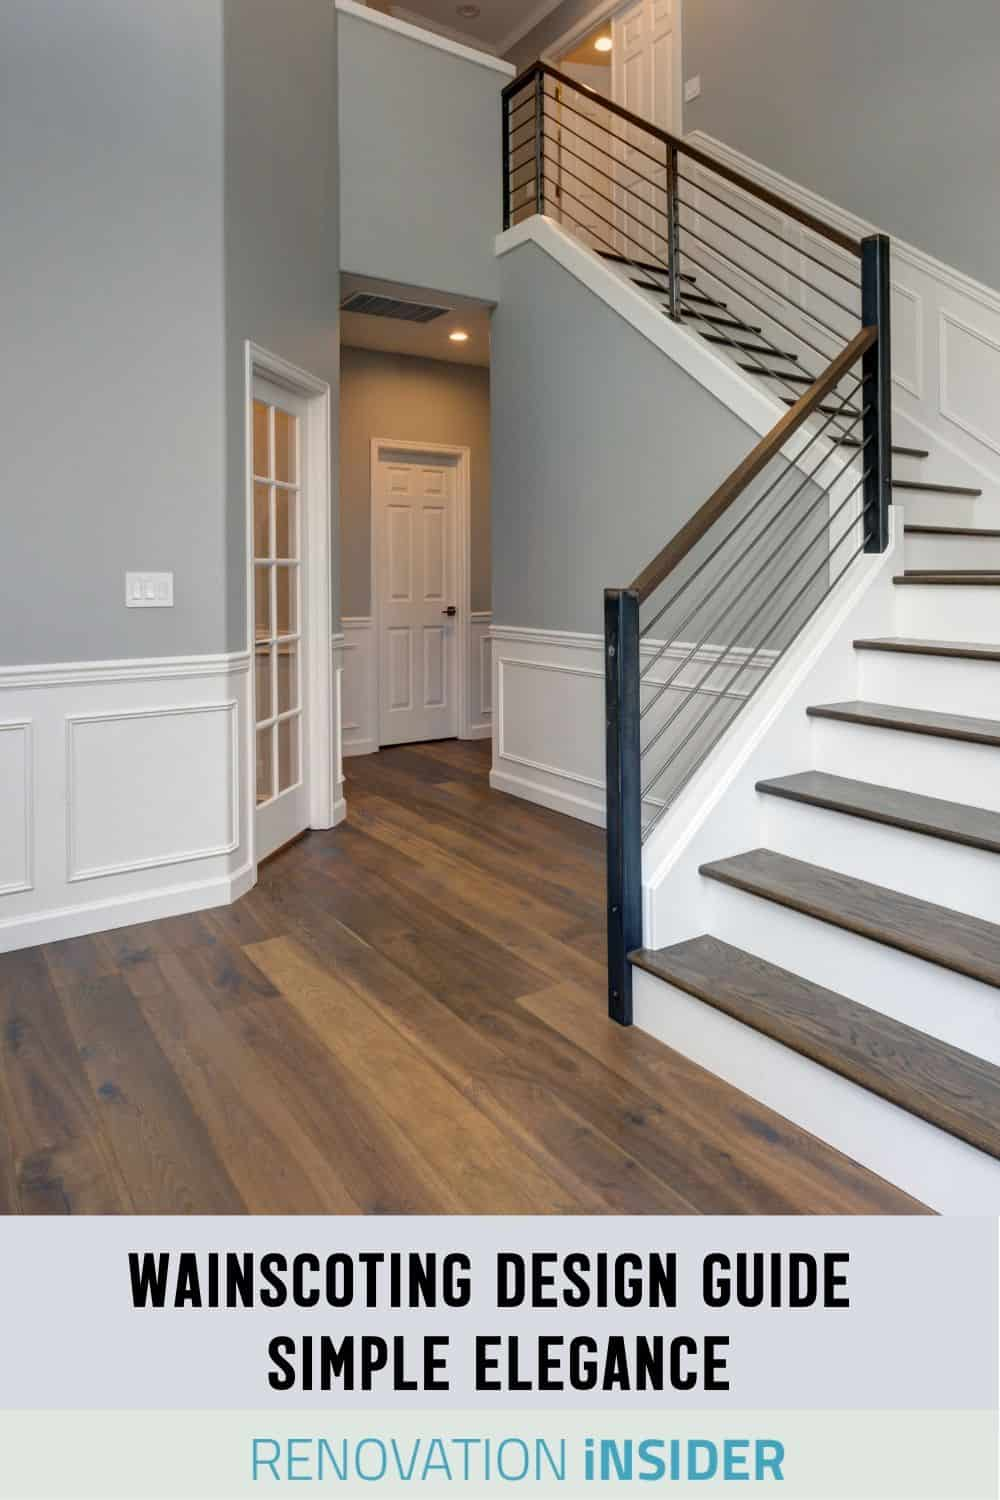 Stair entry with white wainscoting